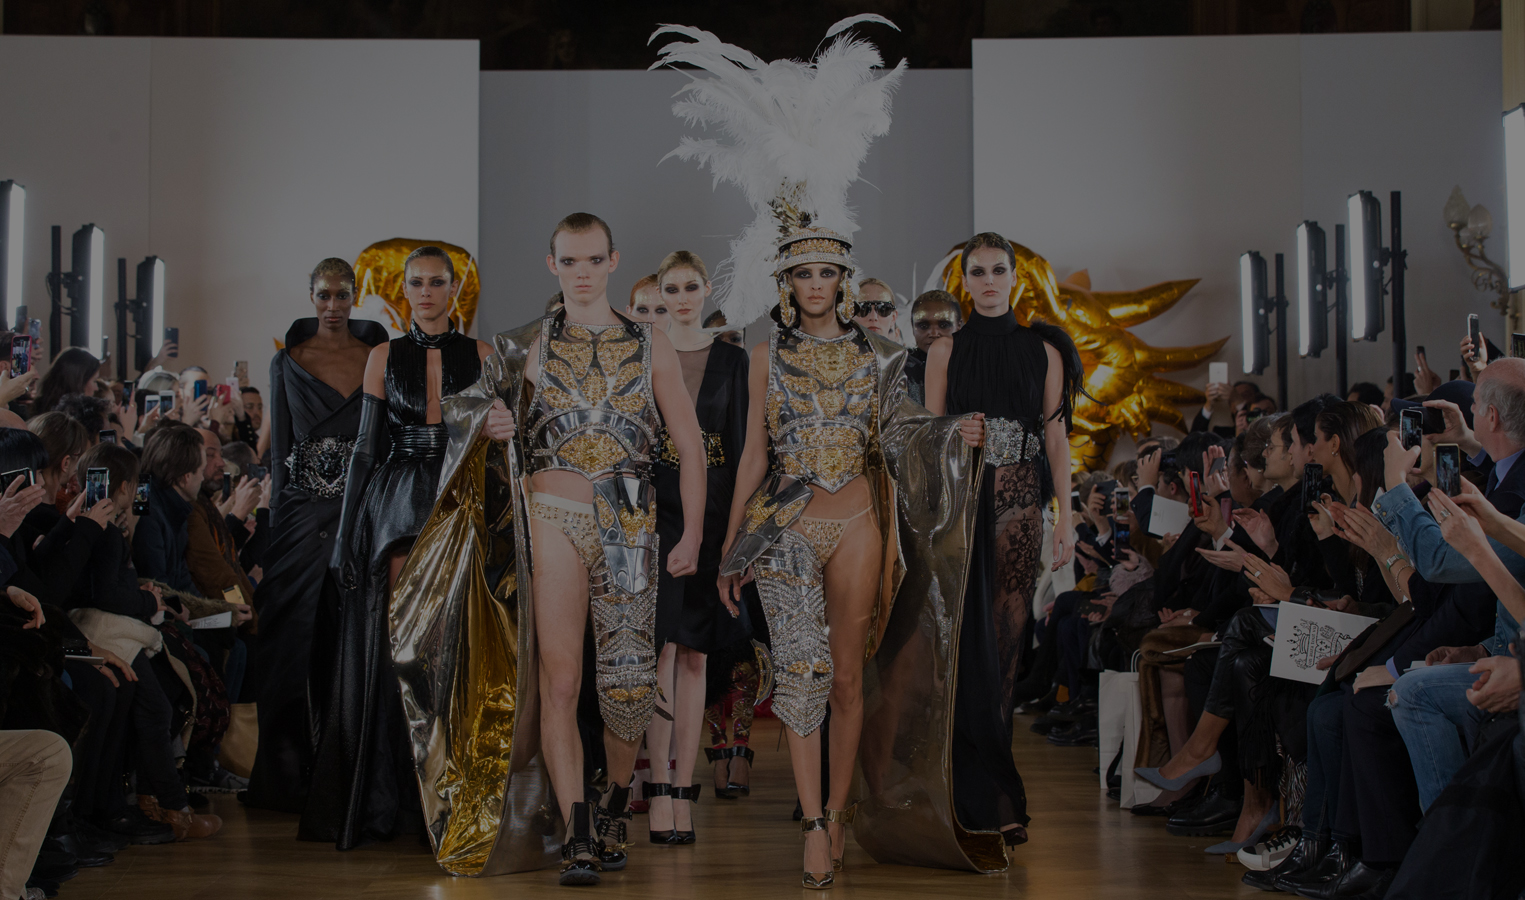 final fashion show on aura tout vu armor gold silver feathers